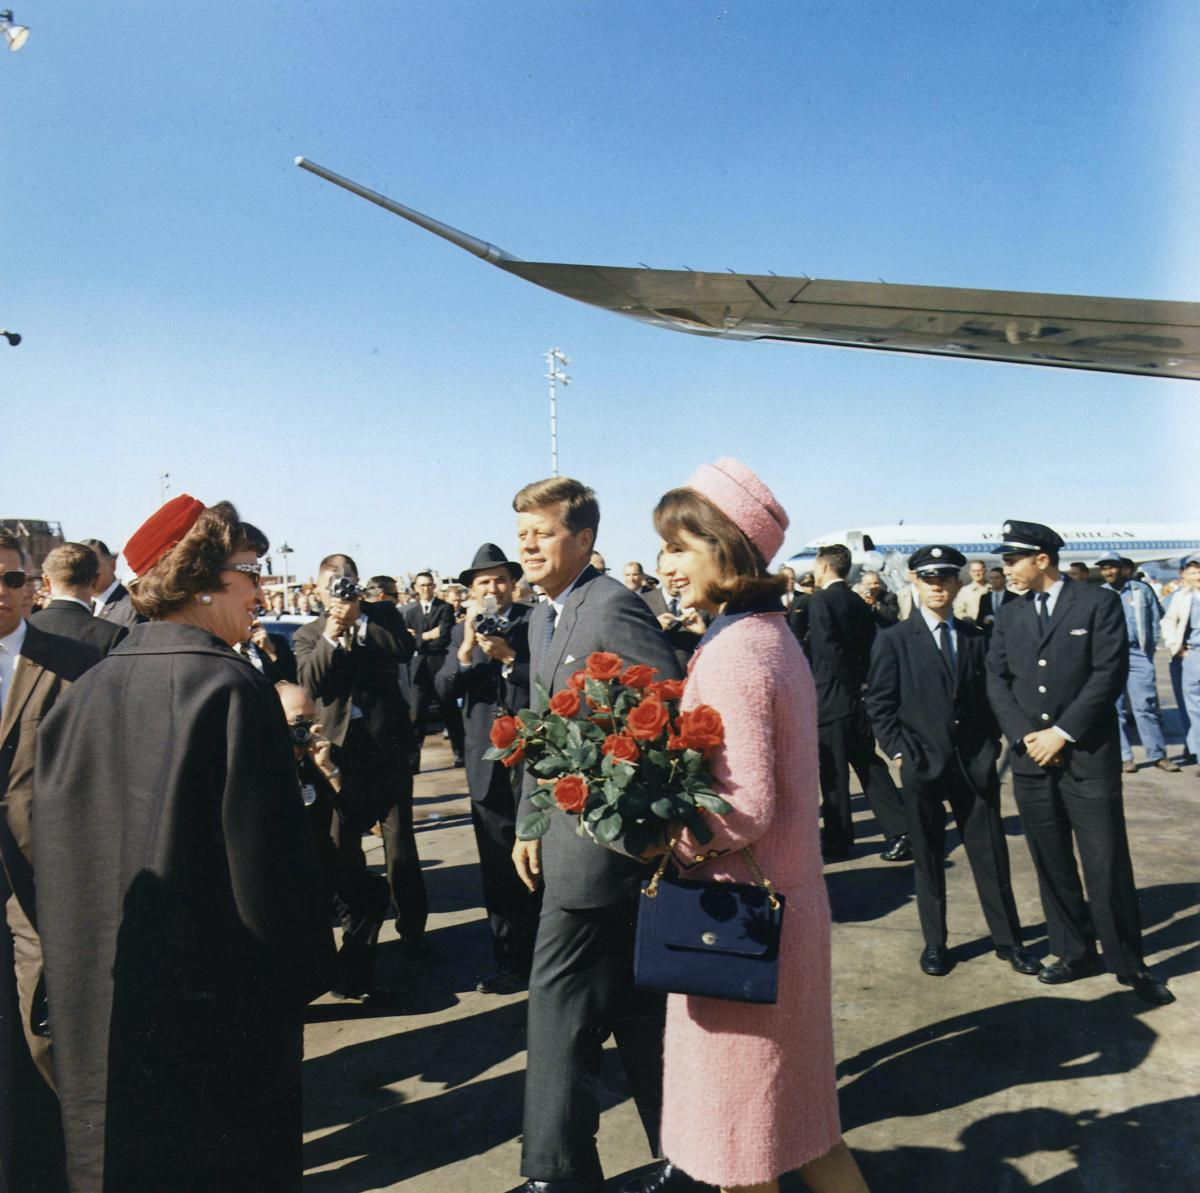 Color photo of President John F. Kennedy and First Lady Jackie Kennedy arriving in Dallas in November 1963